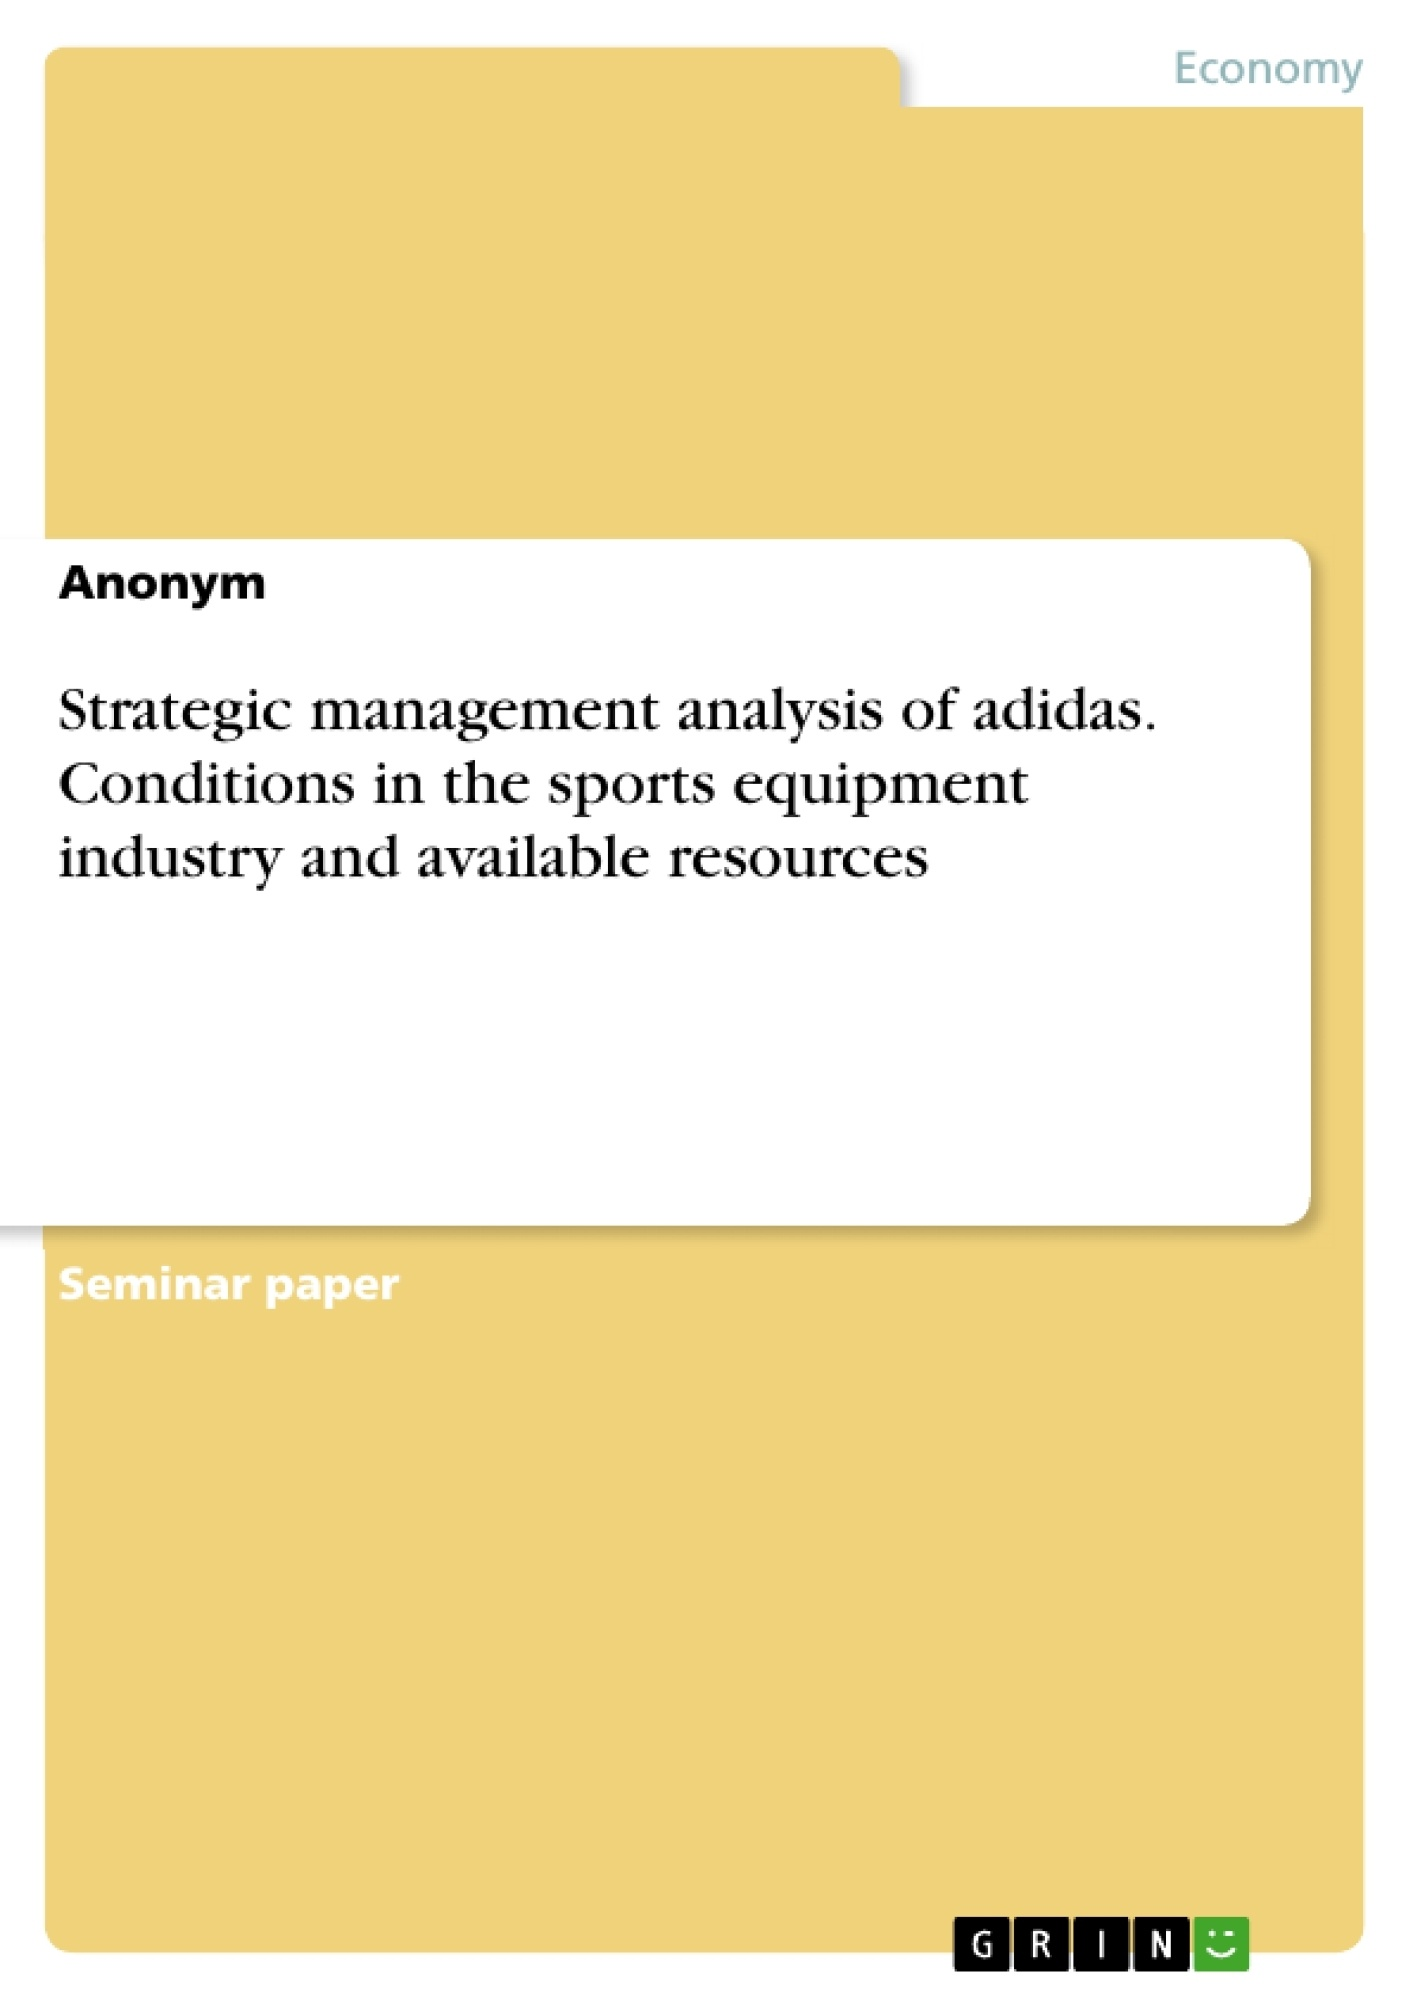 Title: Strategic management analysis of adidas. Conditions in the sports equipment industry and available resources